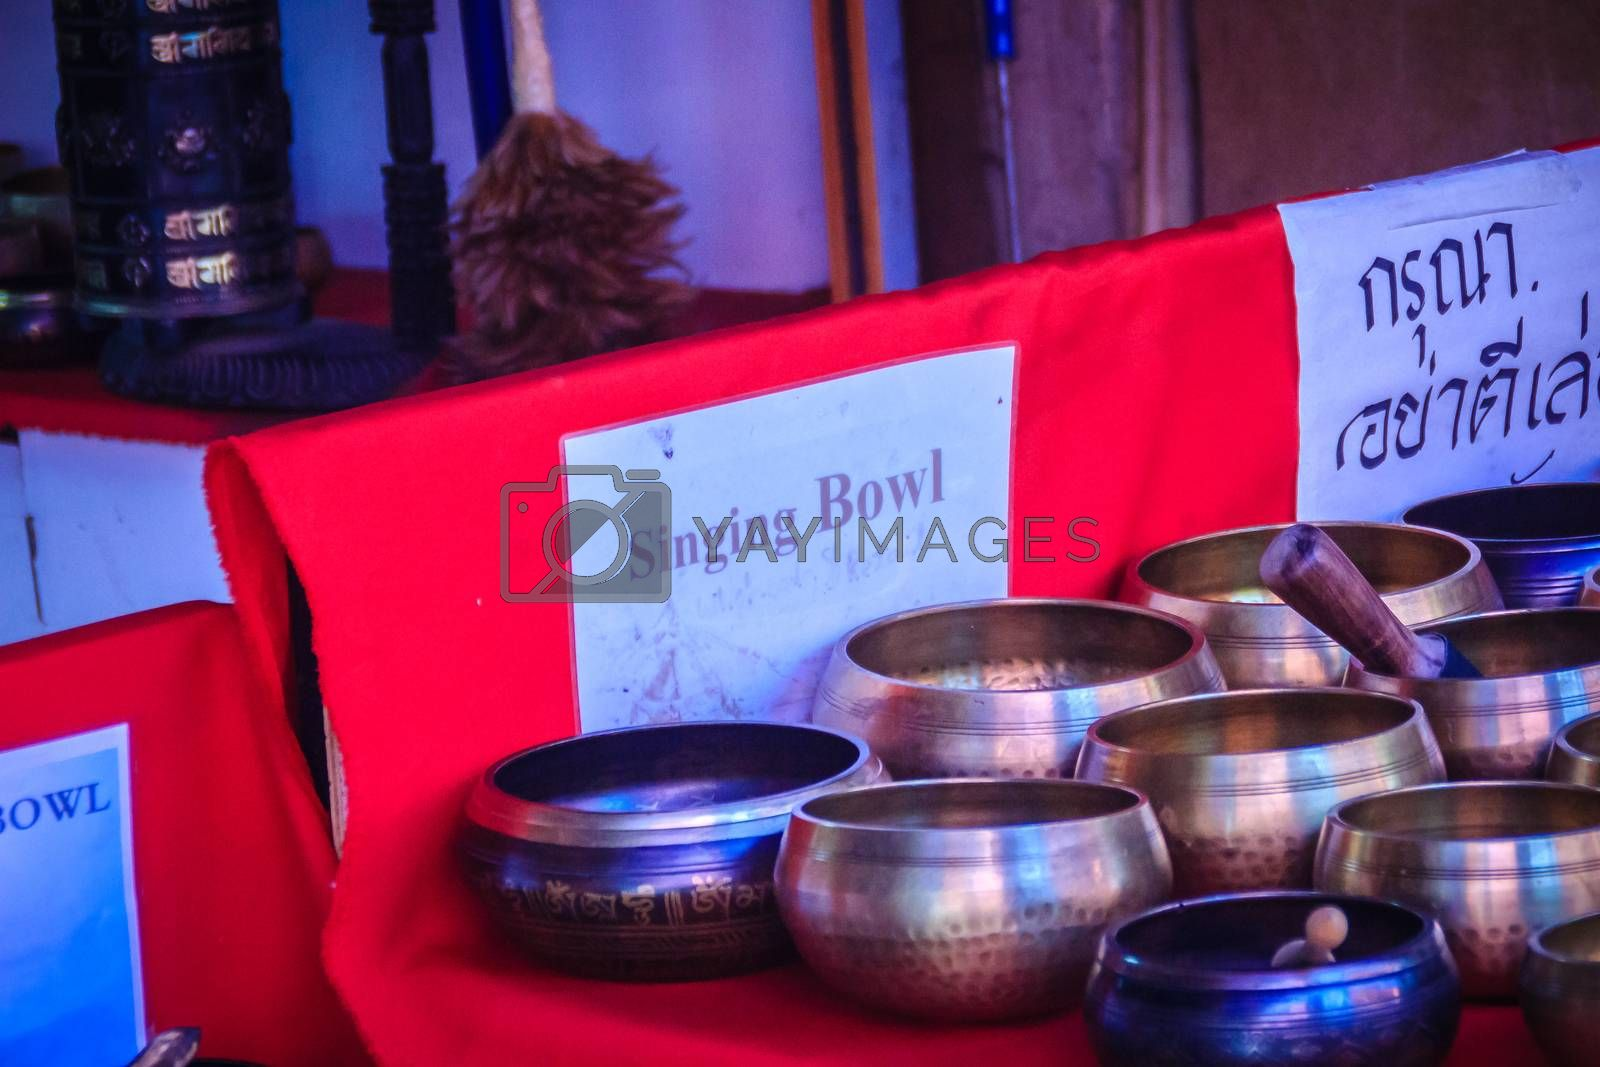 Tibetan singing bowls for sale at the antique market. Singing bo by kwhisky